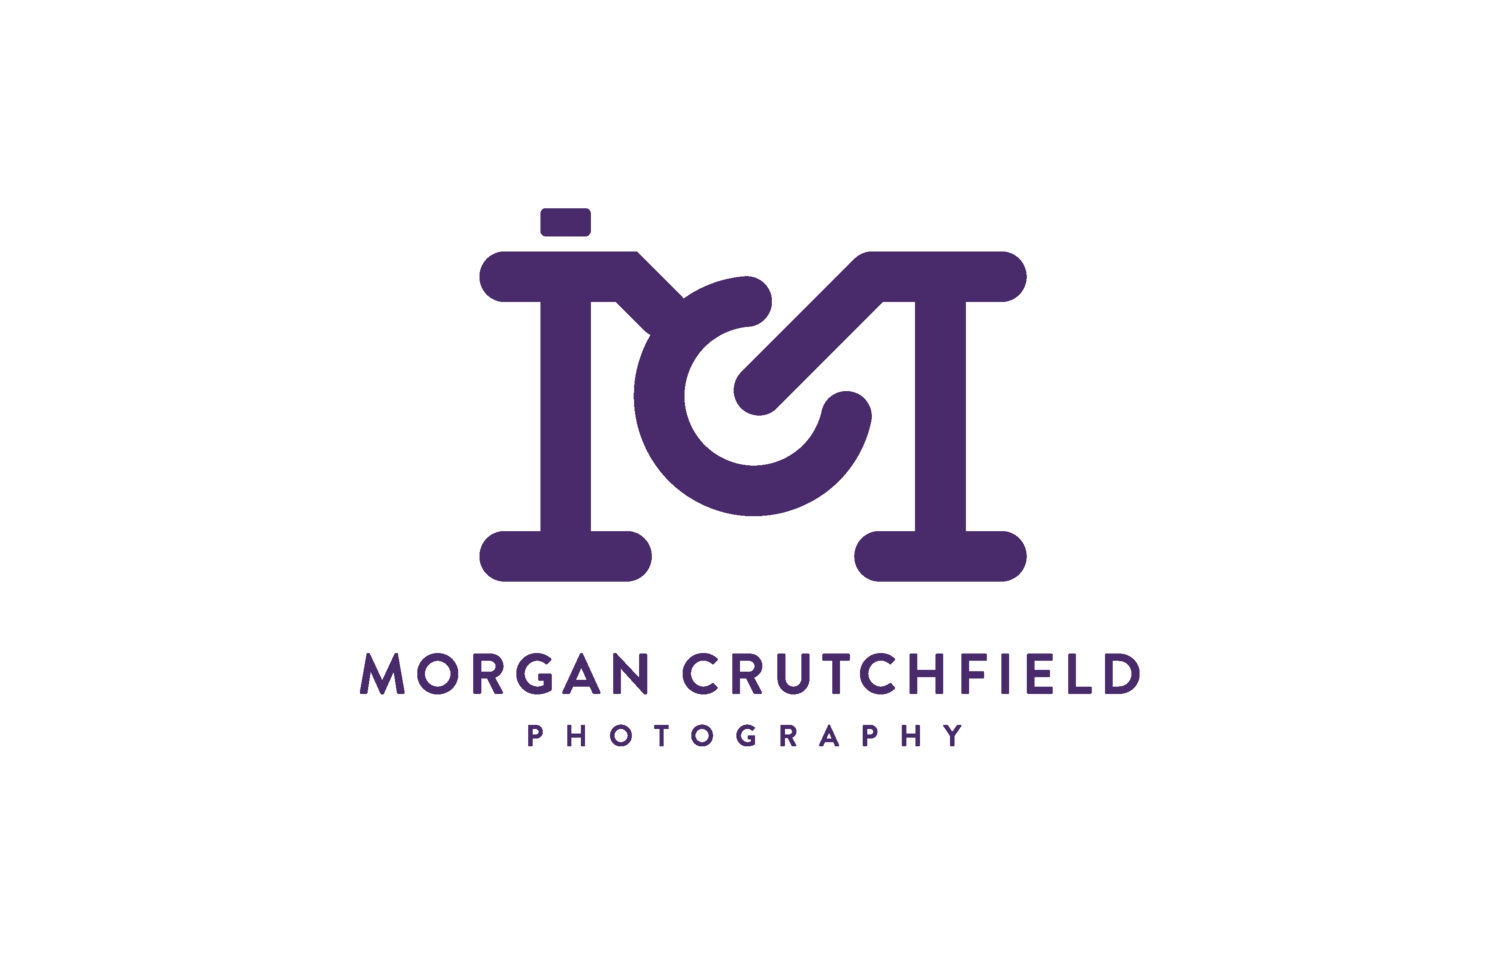 Morgan Crutchfield Photography